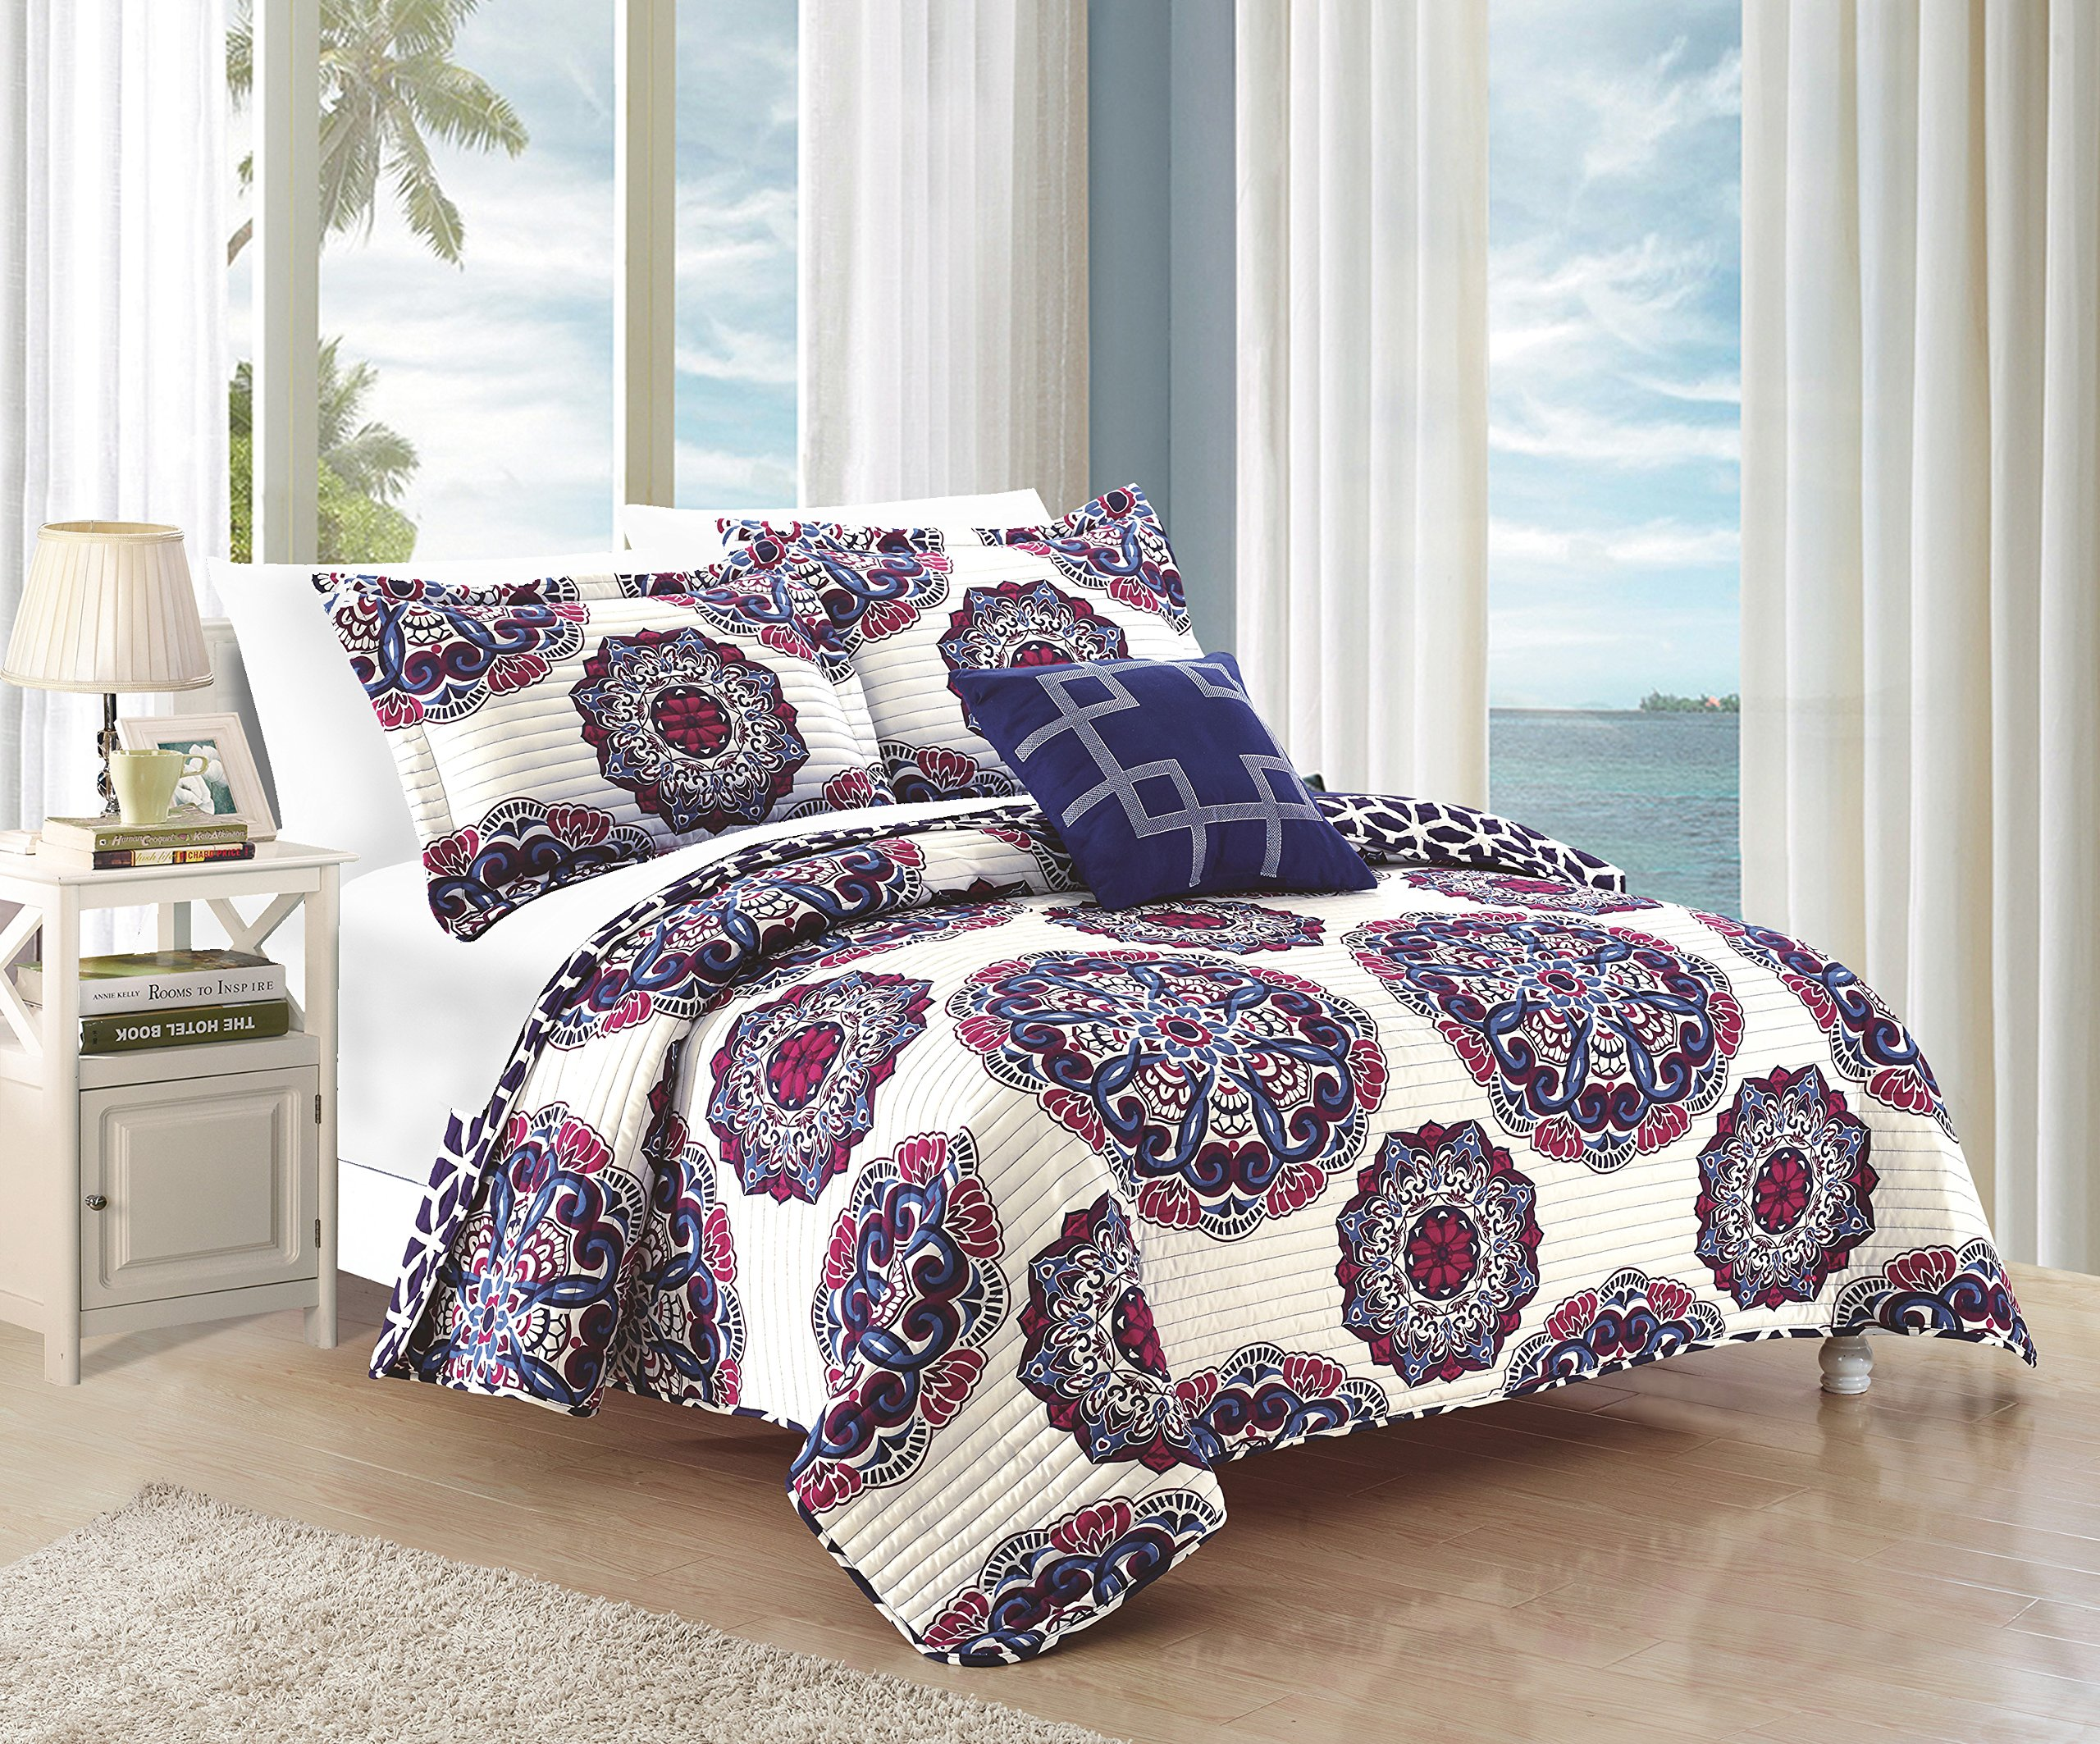 Chic Home Madrid 4 Piece Reversible Quilt Set Super Soft Microfiber Large Printed Medallion Design with Geometric Patterned Backing Bedding Set with Decorative Pillow and Sham, King Navy